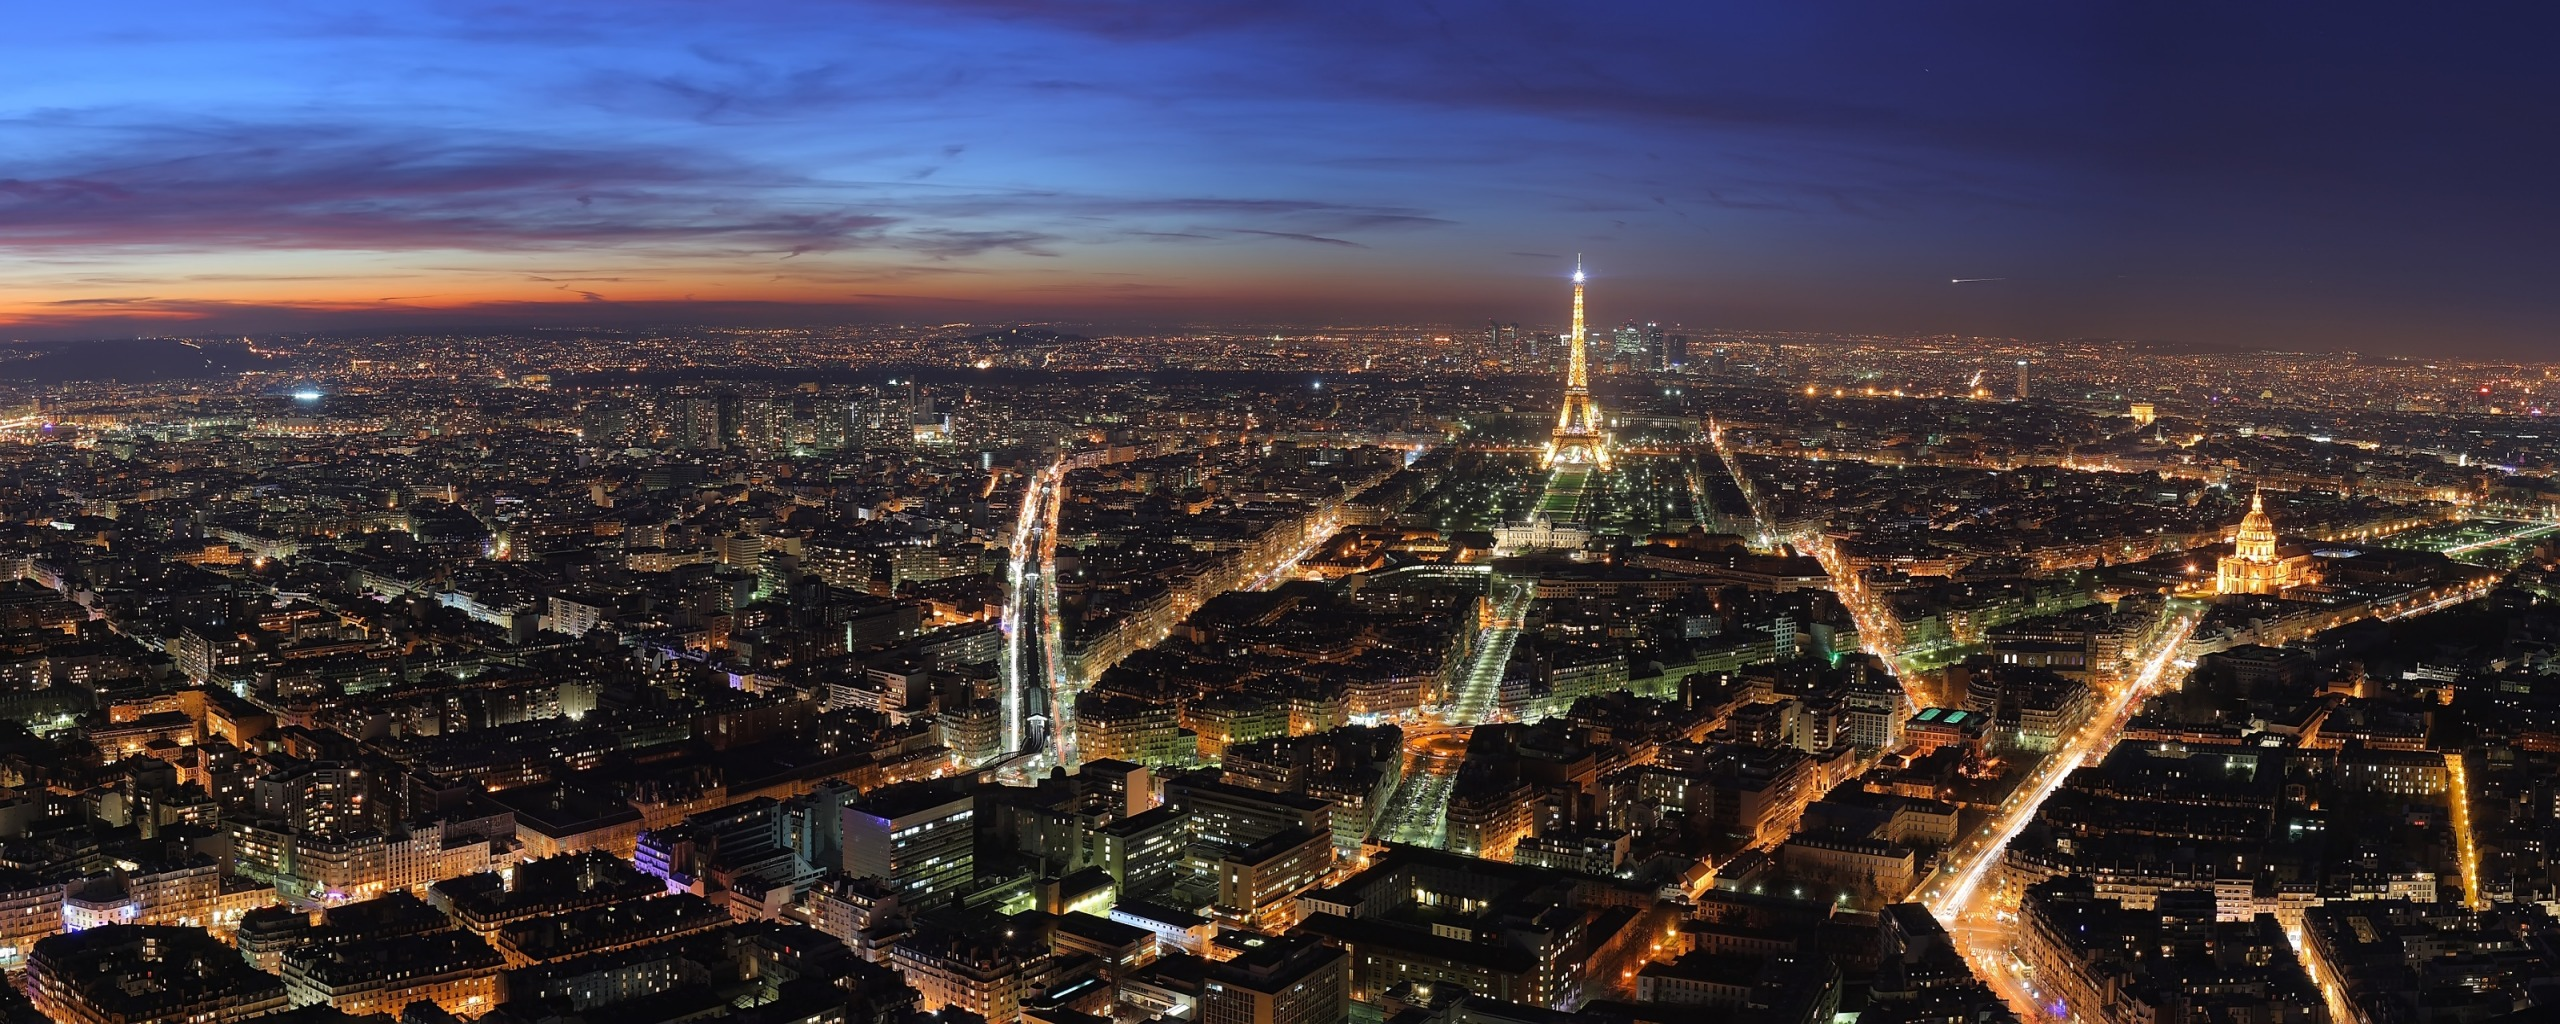 Paris at Night Dual Monitor Wallpapers HD Wallpapers 2560x1024